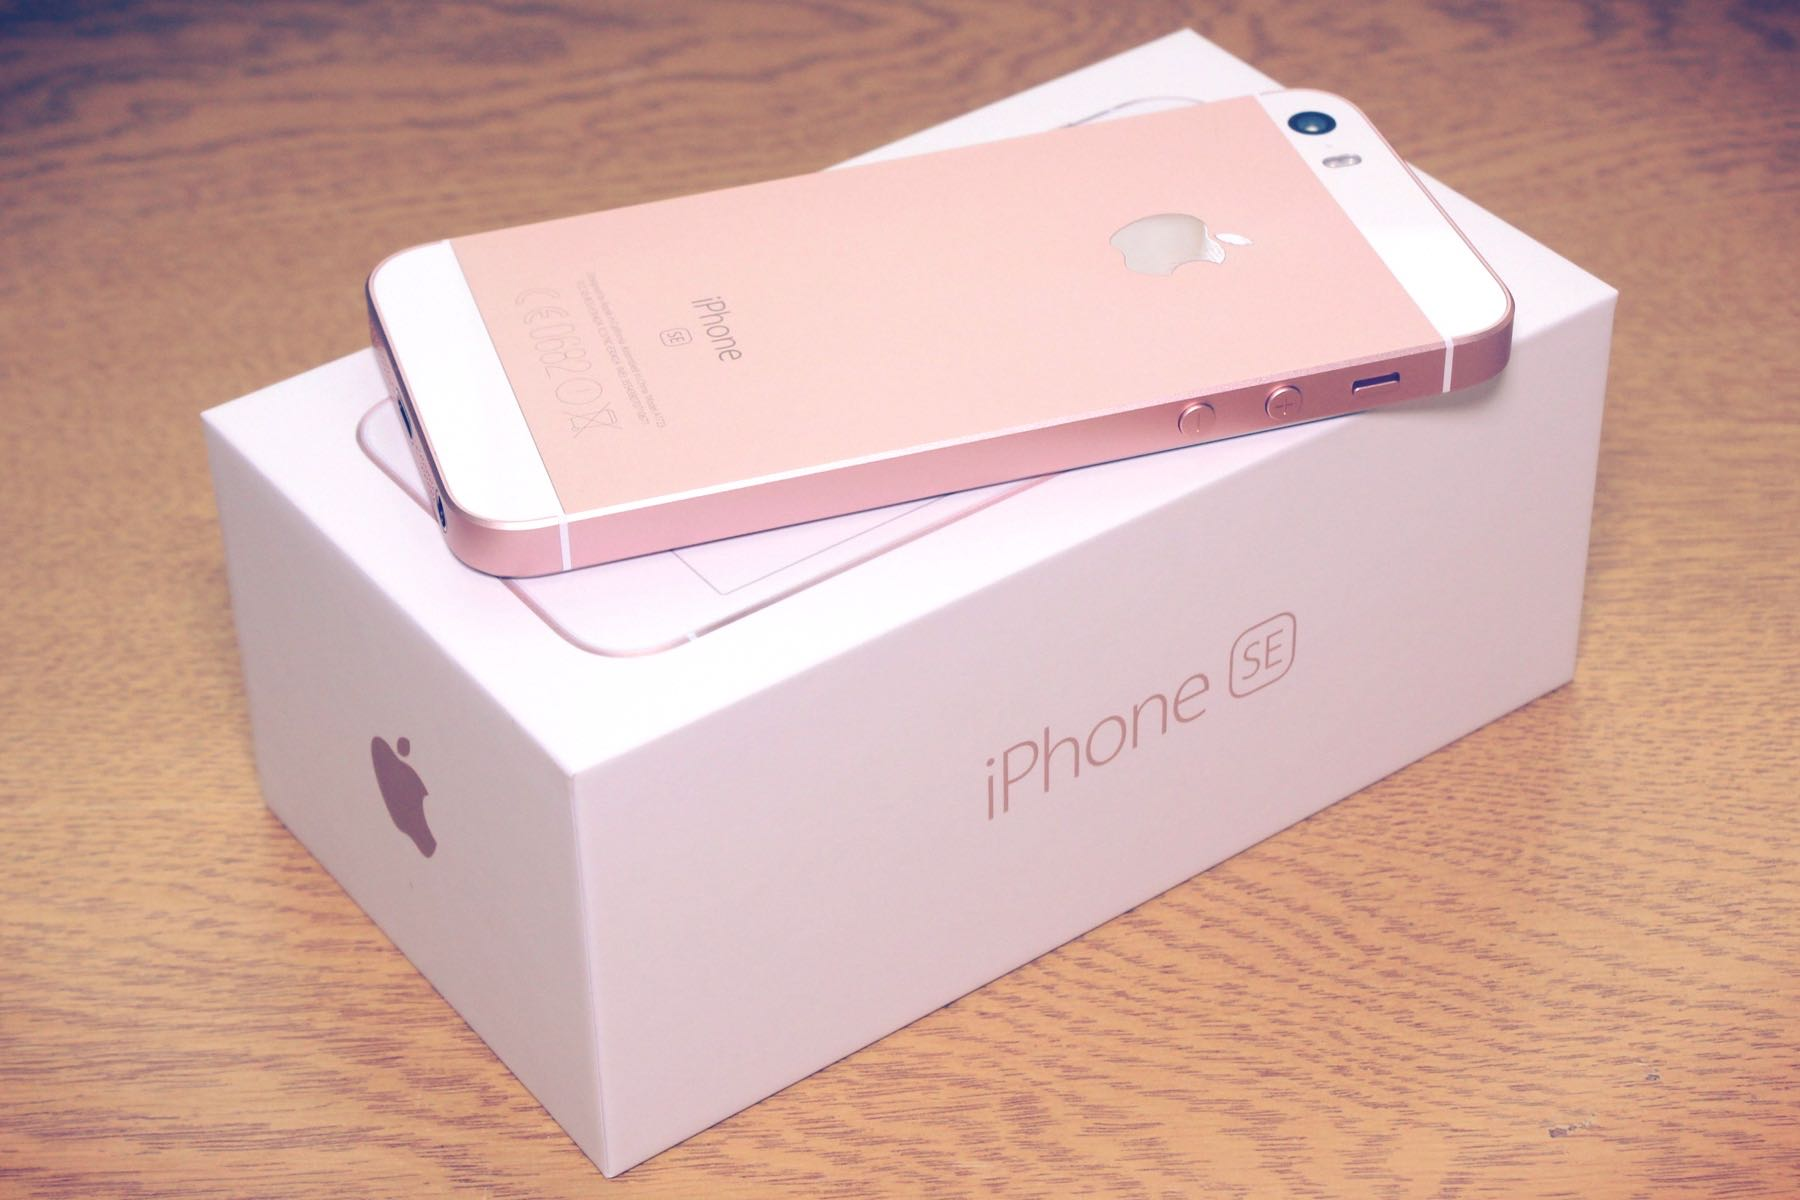 Apple iPhone SE Rose Gold Buy eBay $349 2